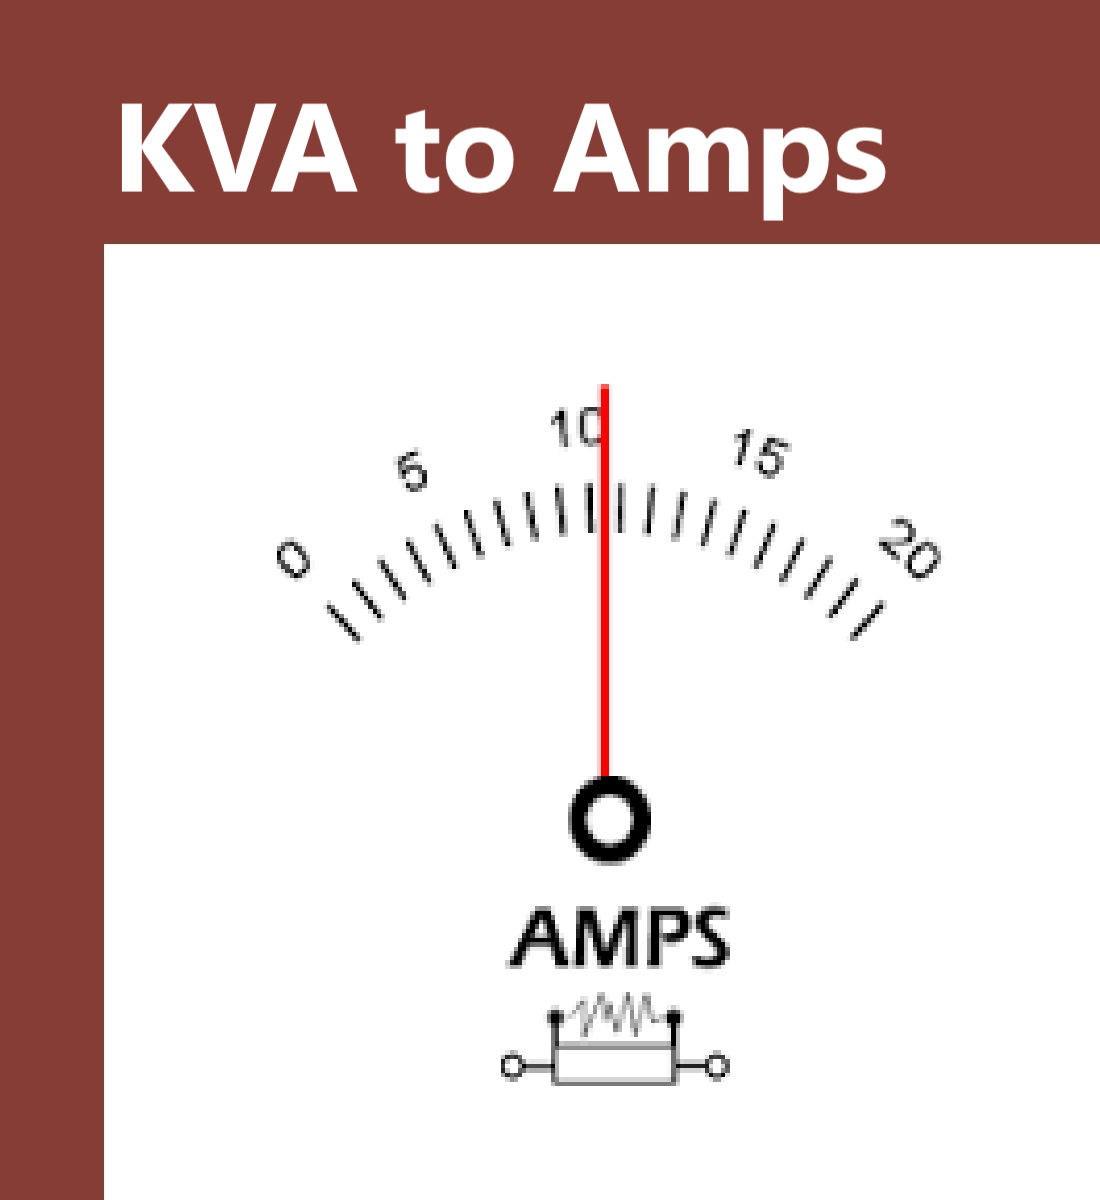 KVA to Amps Calculator